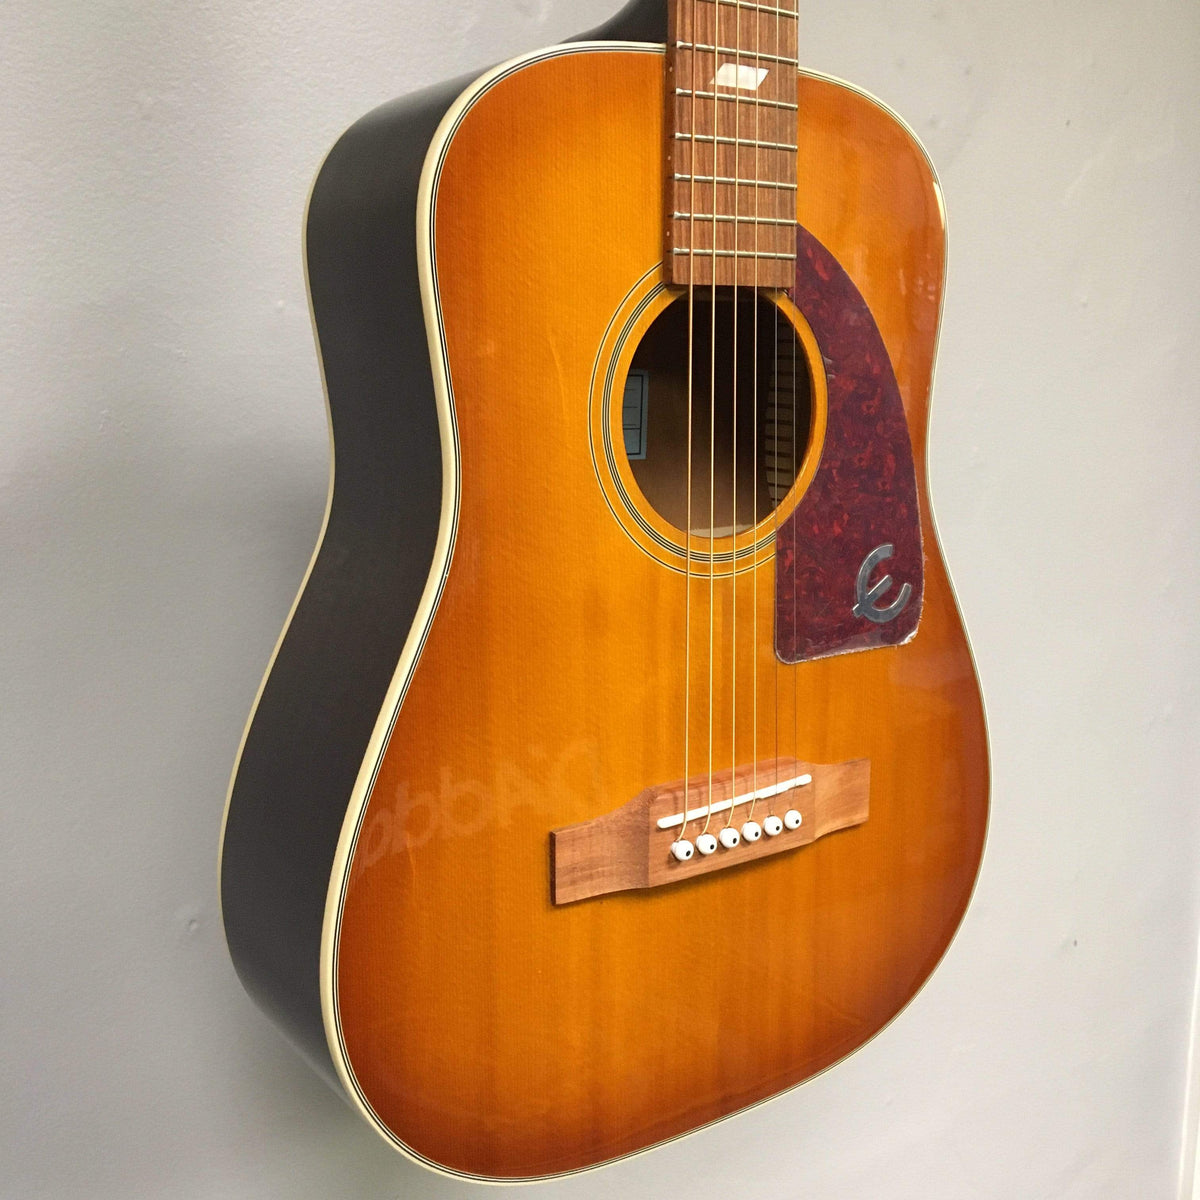 Epiphone GUITARS - ACOUSTIC GUITARS Epiphone Lil' Tex Travel Acoustic - Faded Cherry